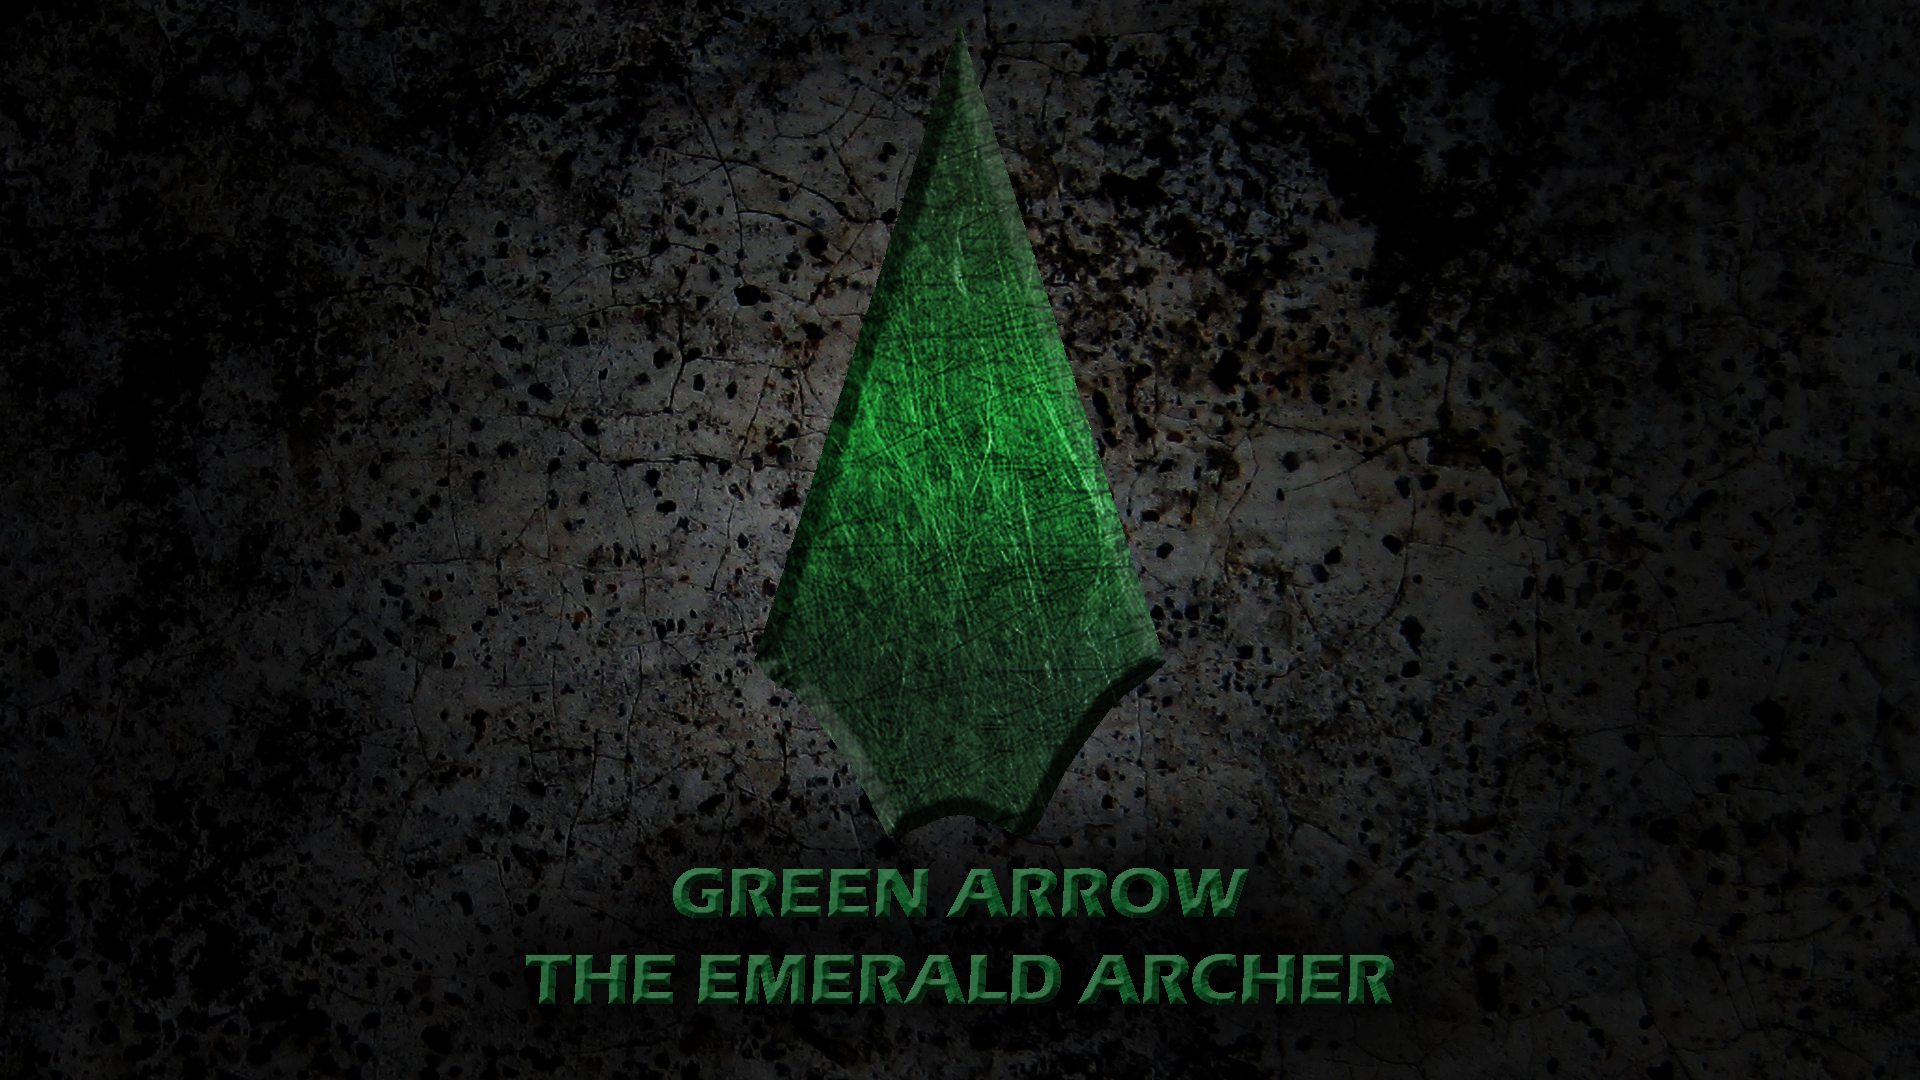 Arrow the emerald archer by epsilon xiii on deviantart arrow the emerald archer by epsilon xiii voltagebd